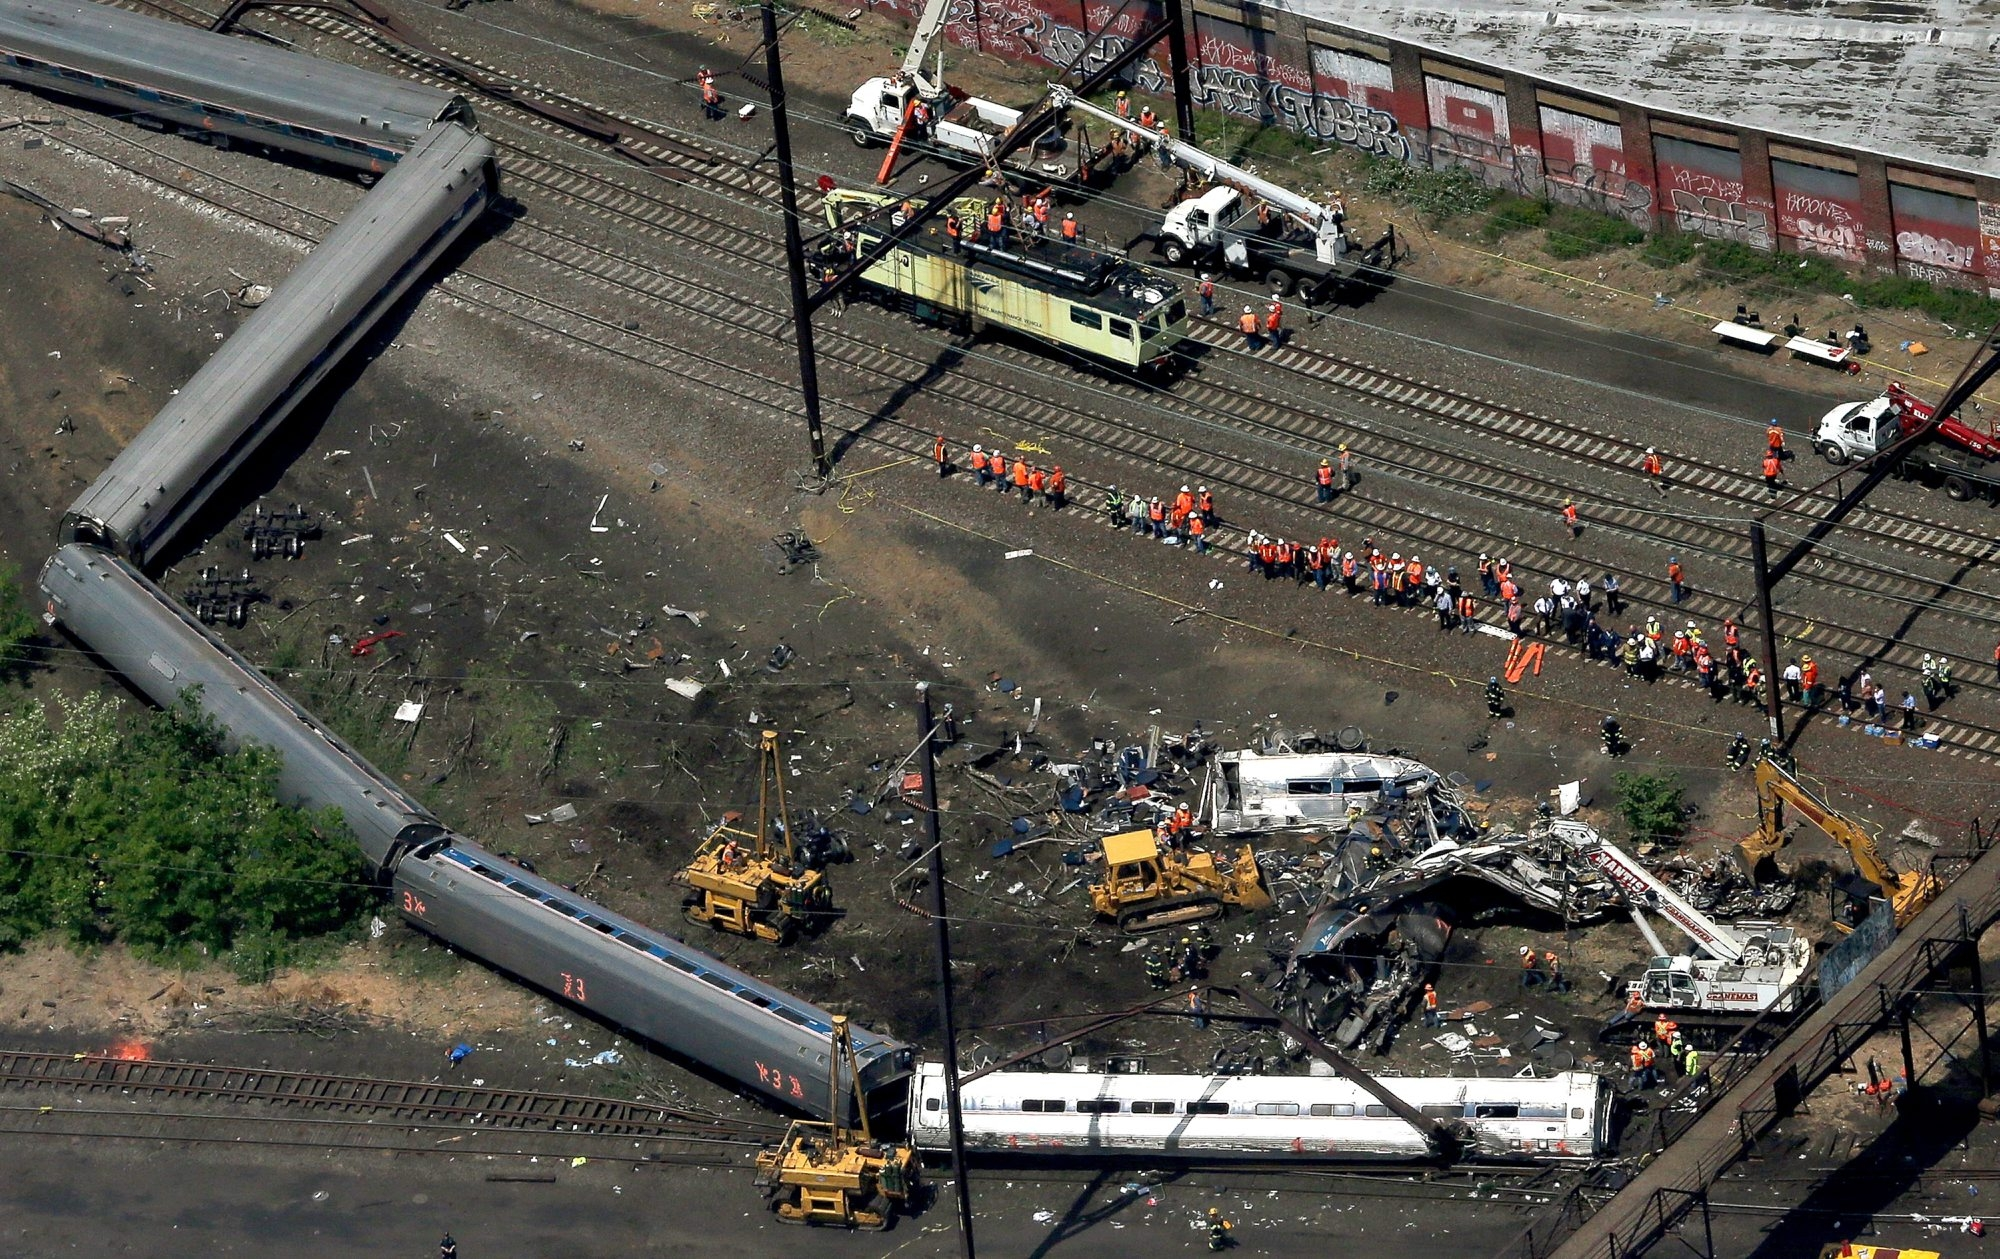 The deadly Amtrak derailment May 13 in Philadelphia could have been prevented if the positive train control system had been in operation. (Getty Images file photo)